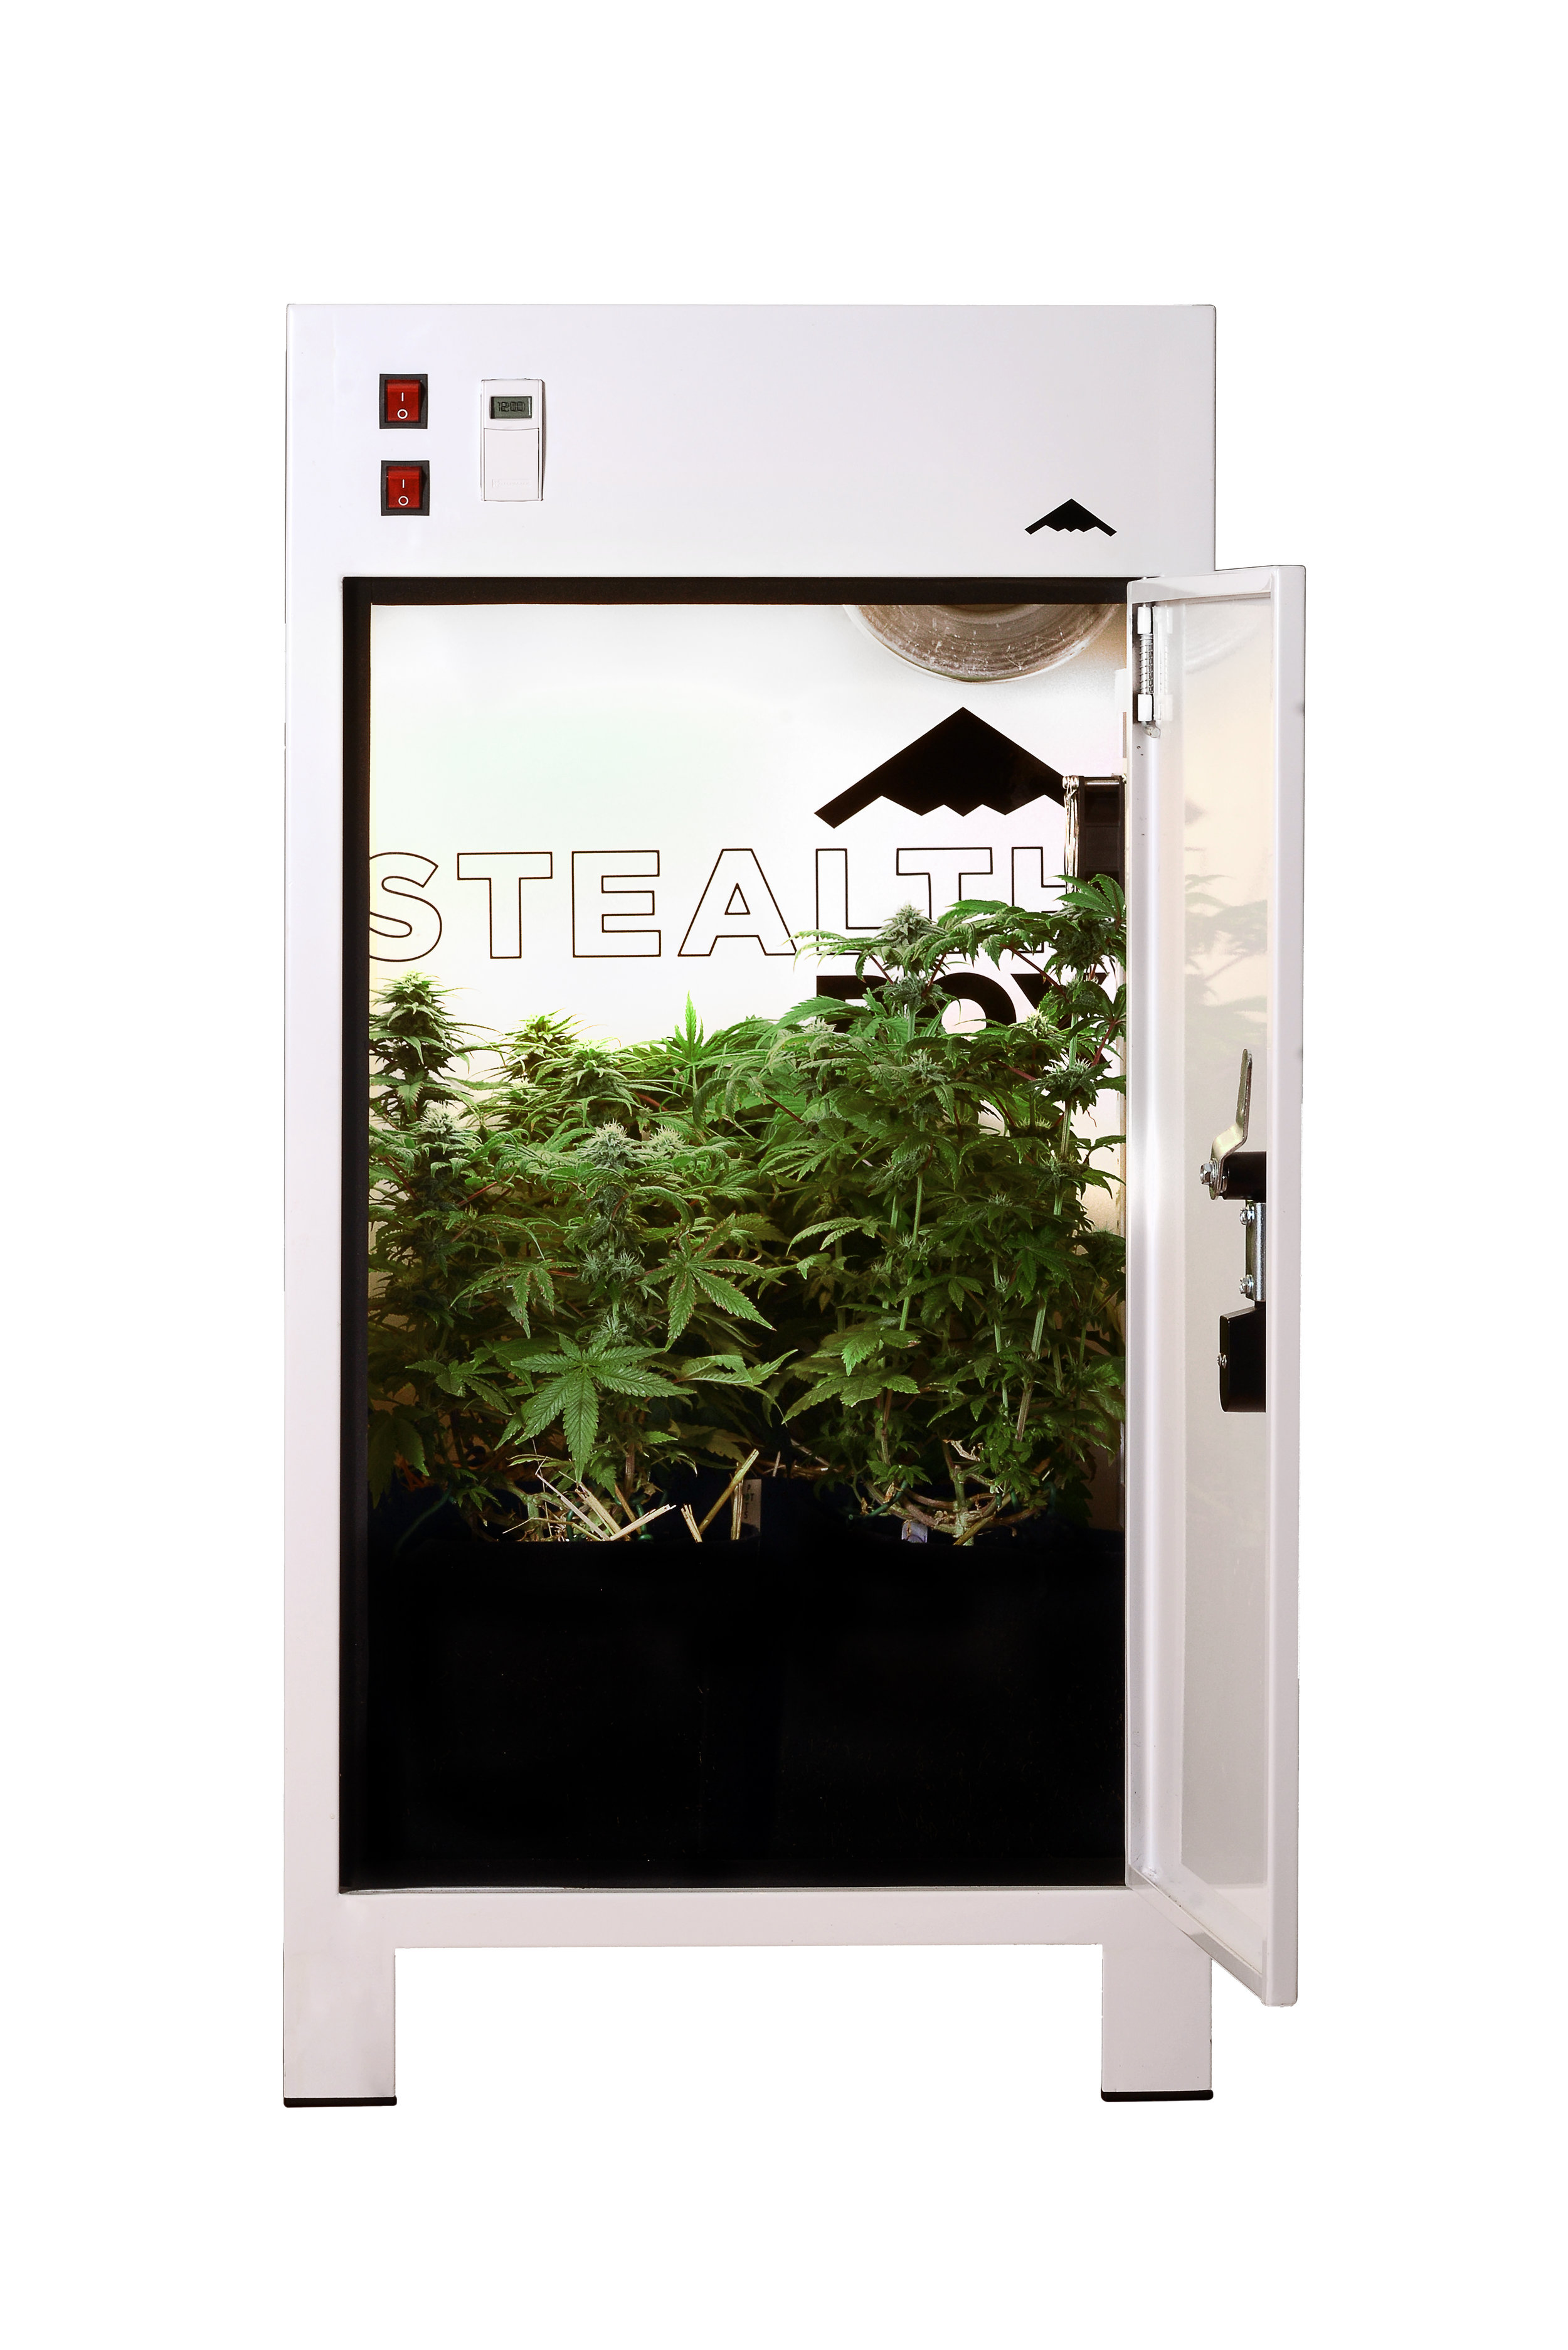 Stealth box - The Canadian Grow Box with Canadian pricing 🍁$1495.00